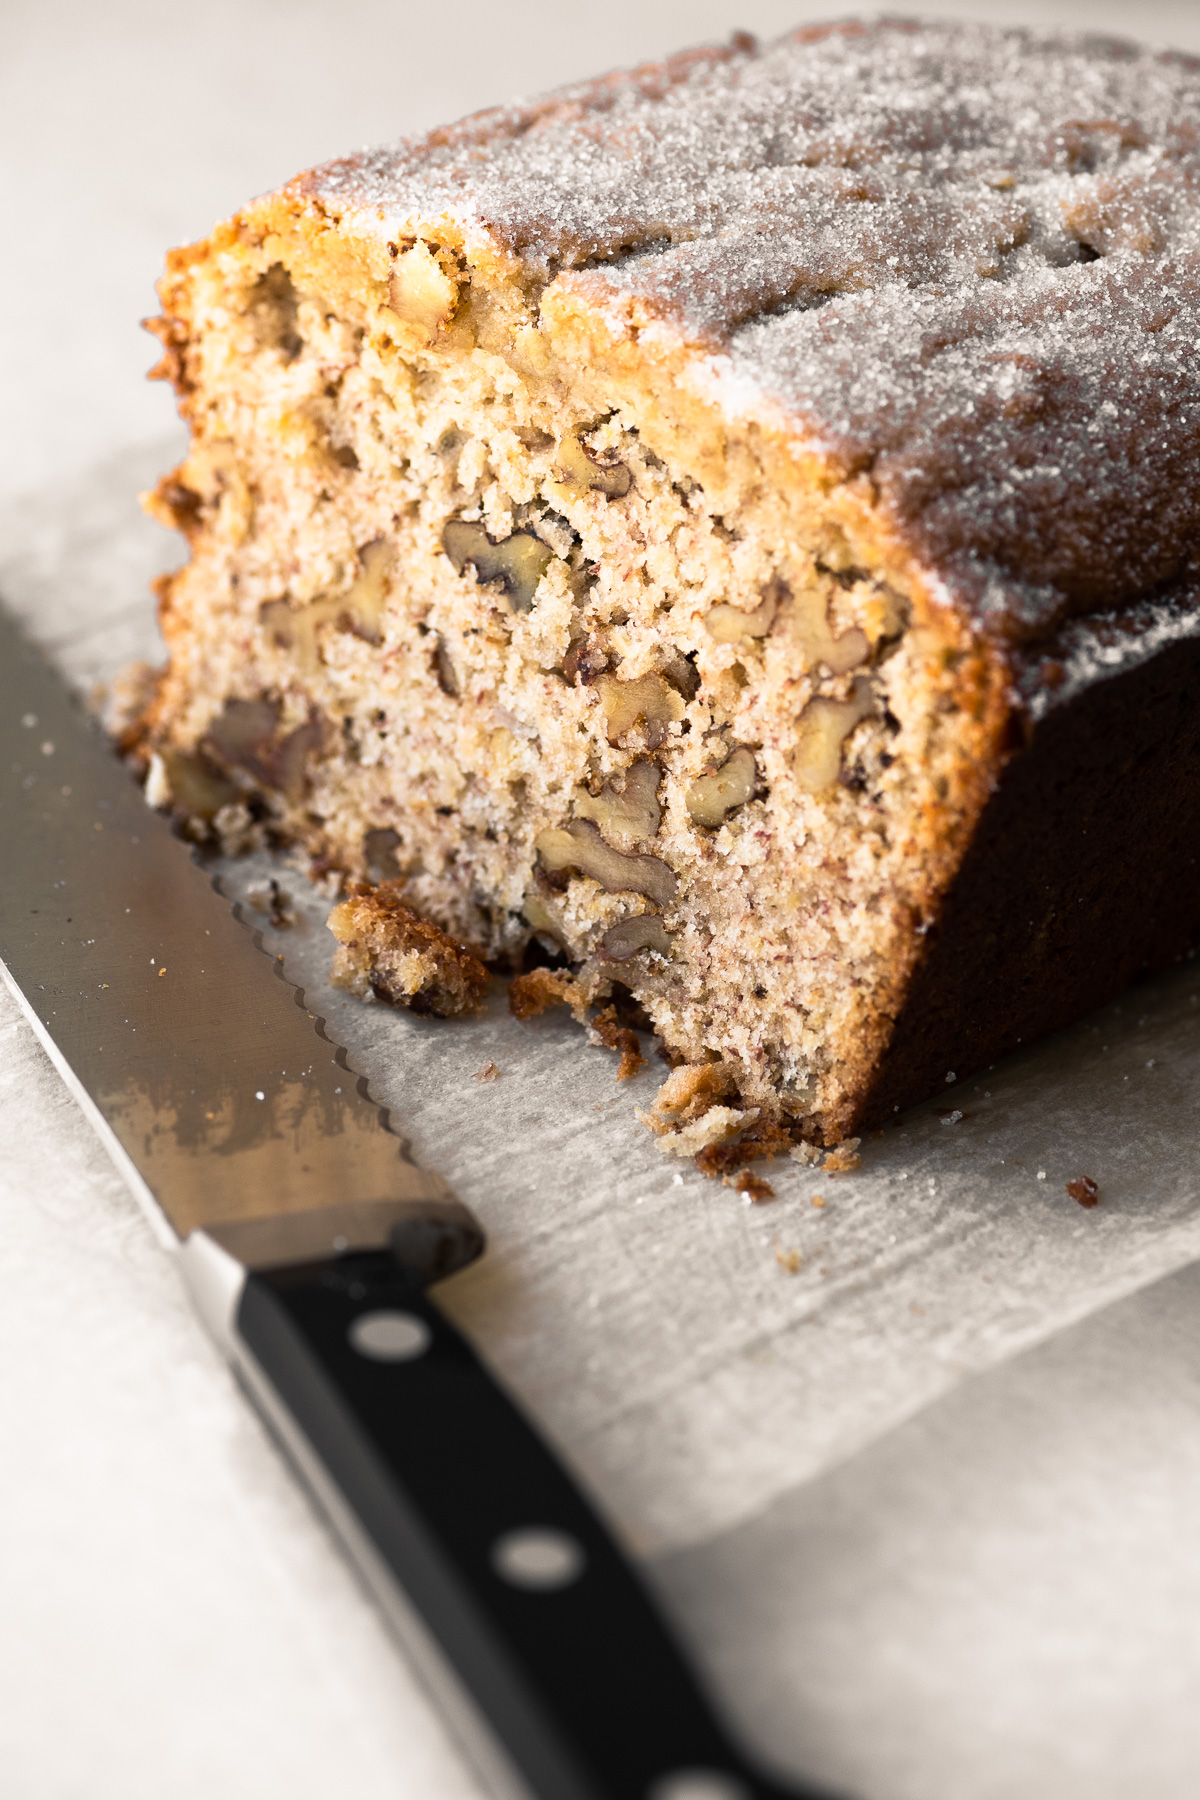 Roasted Banana Bread with serrated knife